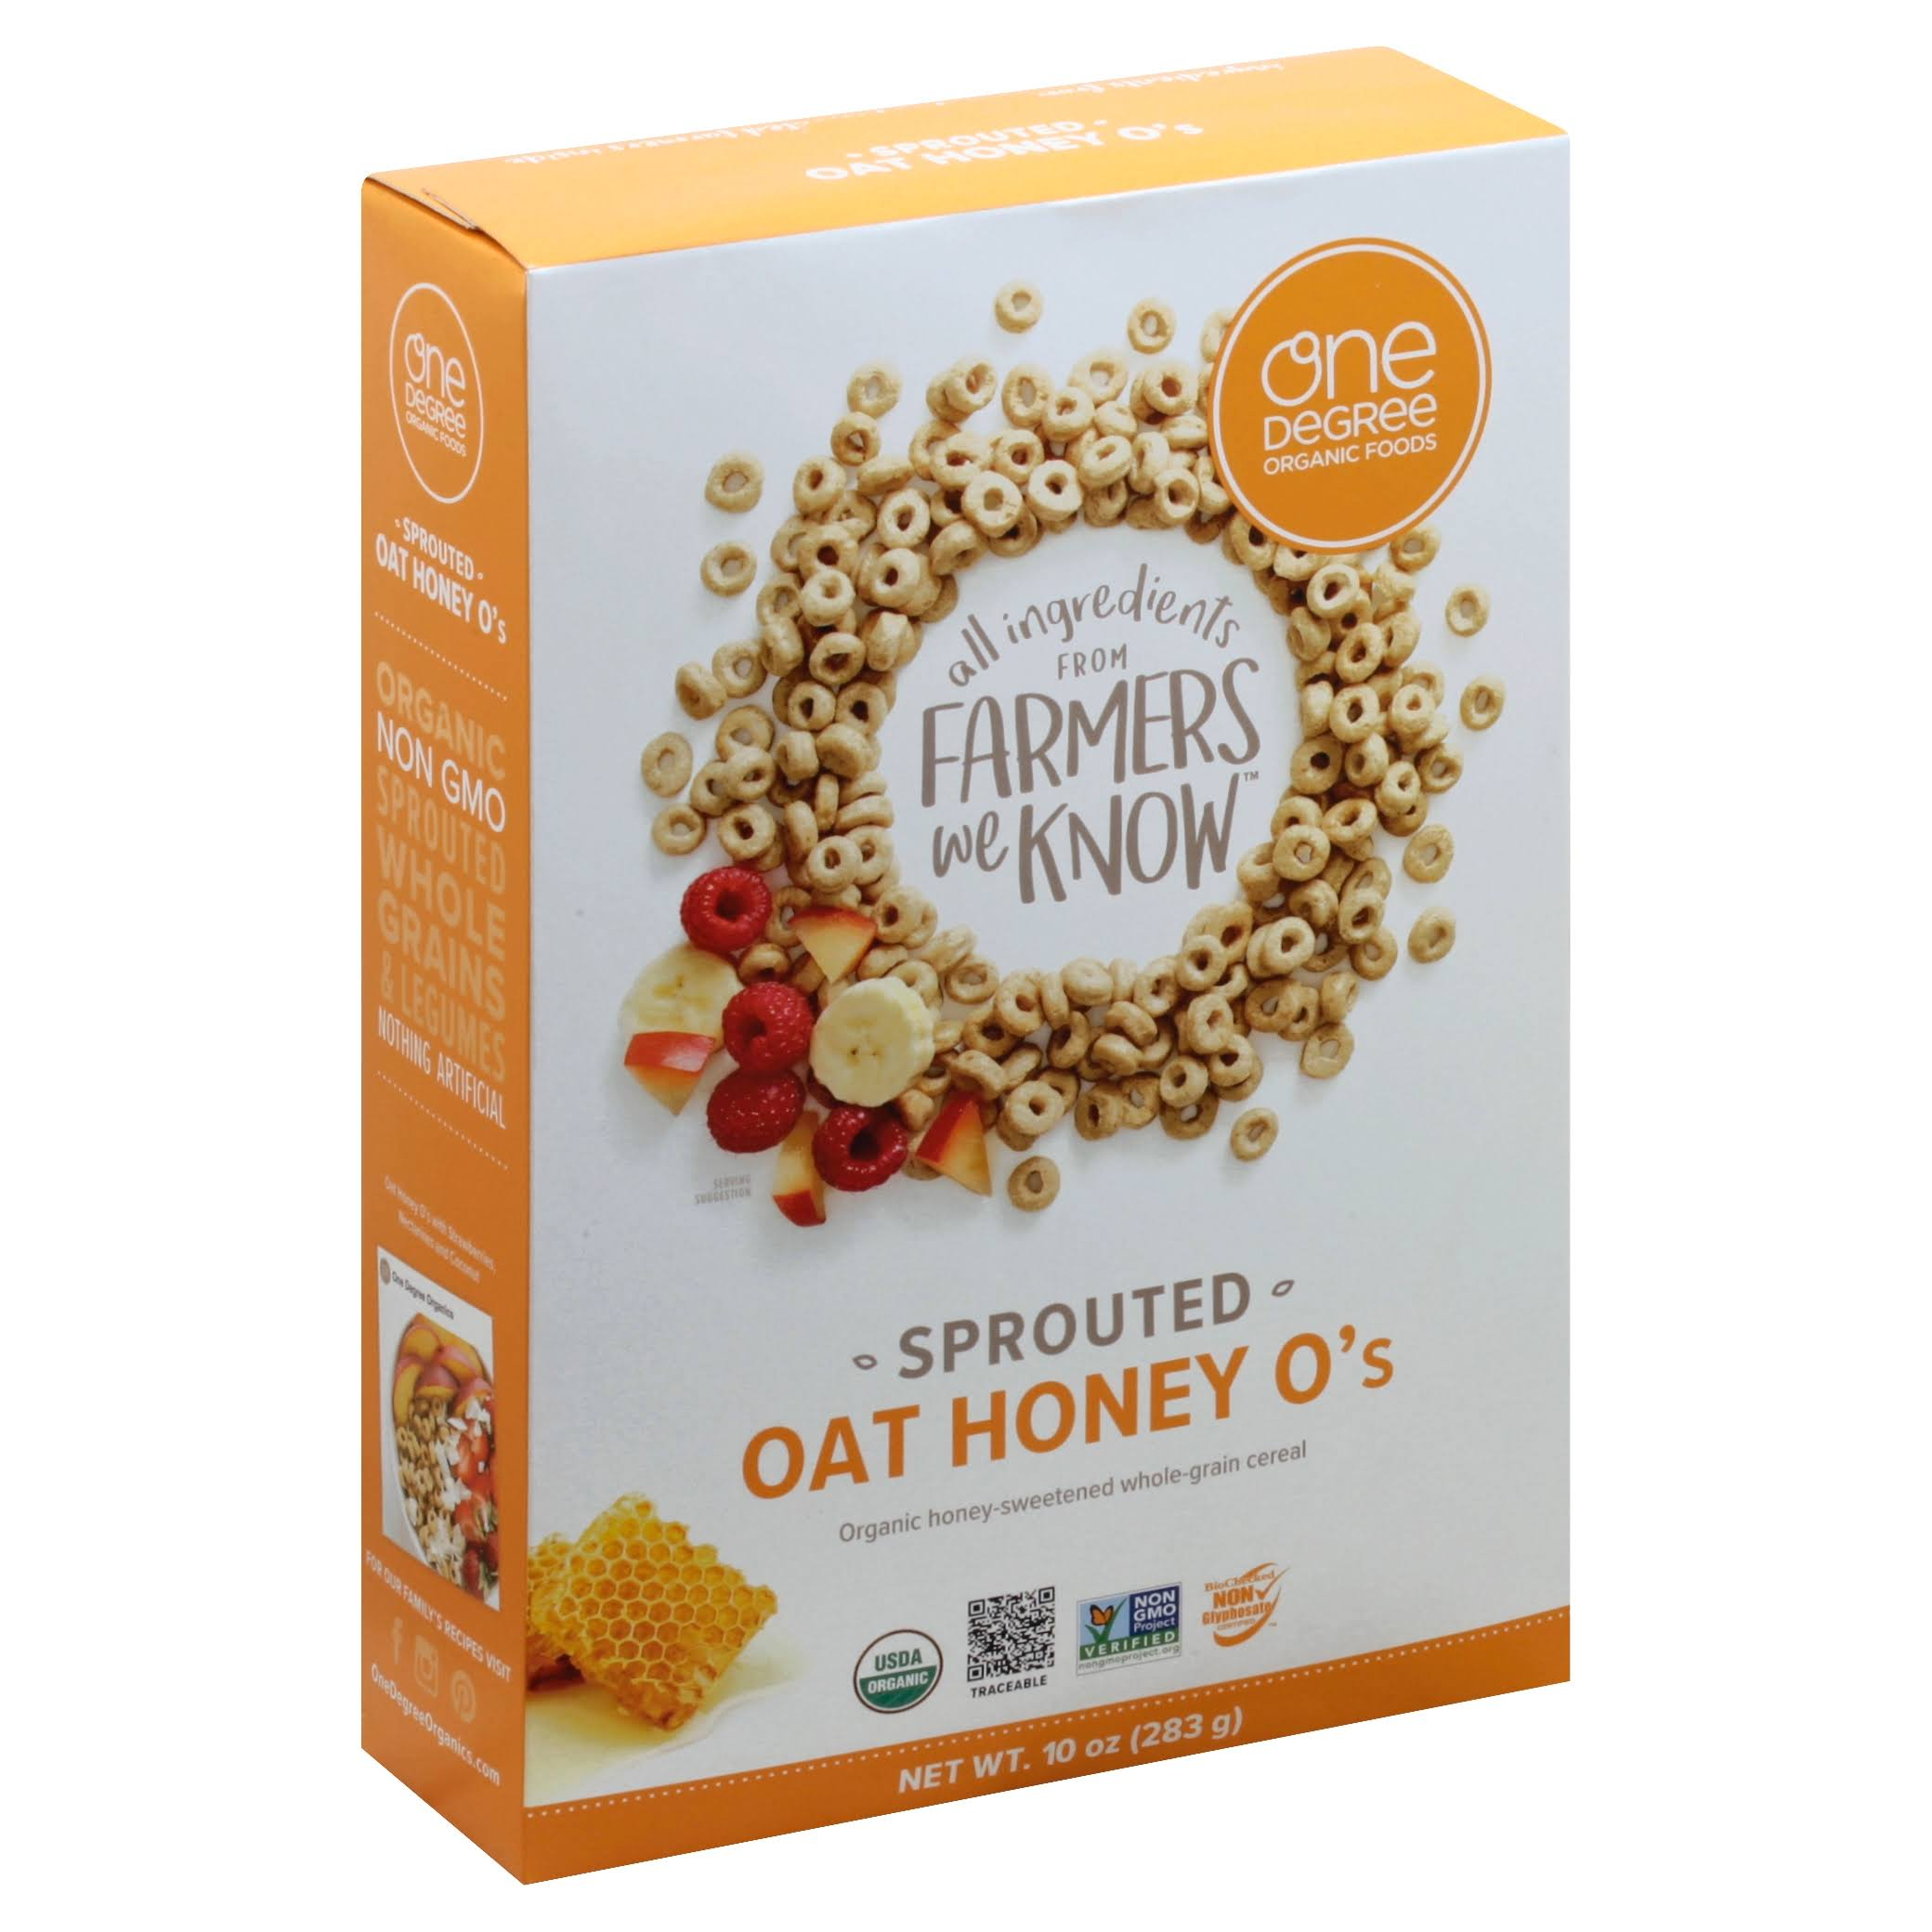 One Degree Organic Foods Honey O's Sprouted Oat - 10oz